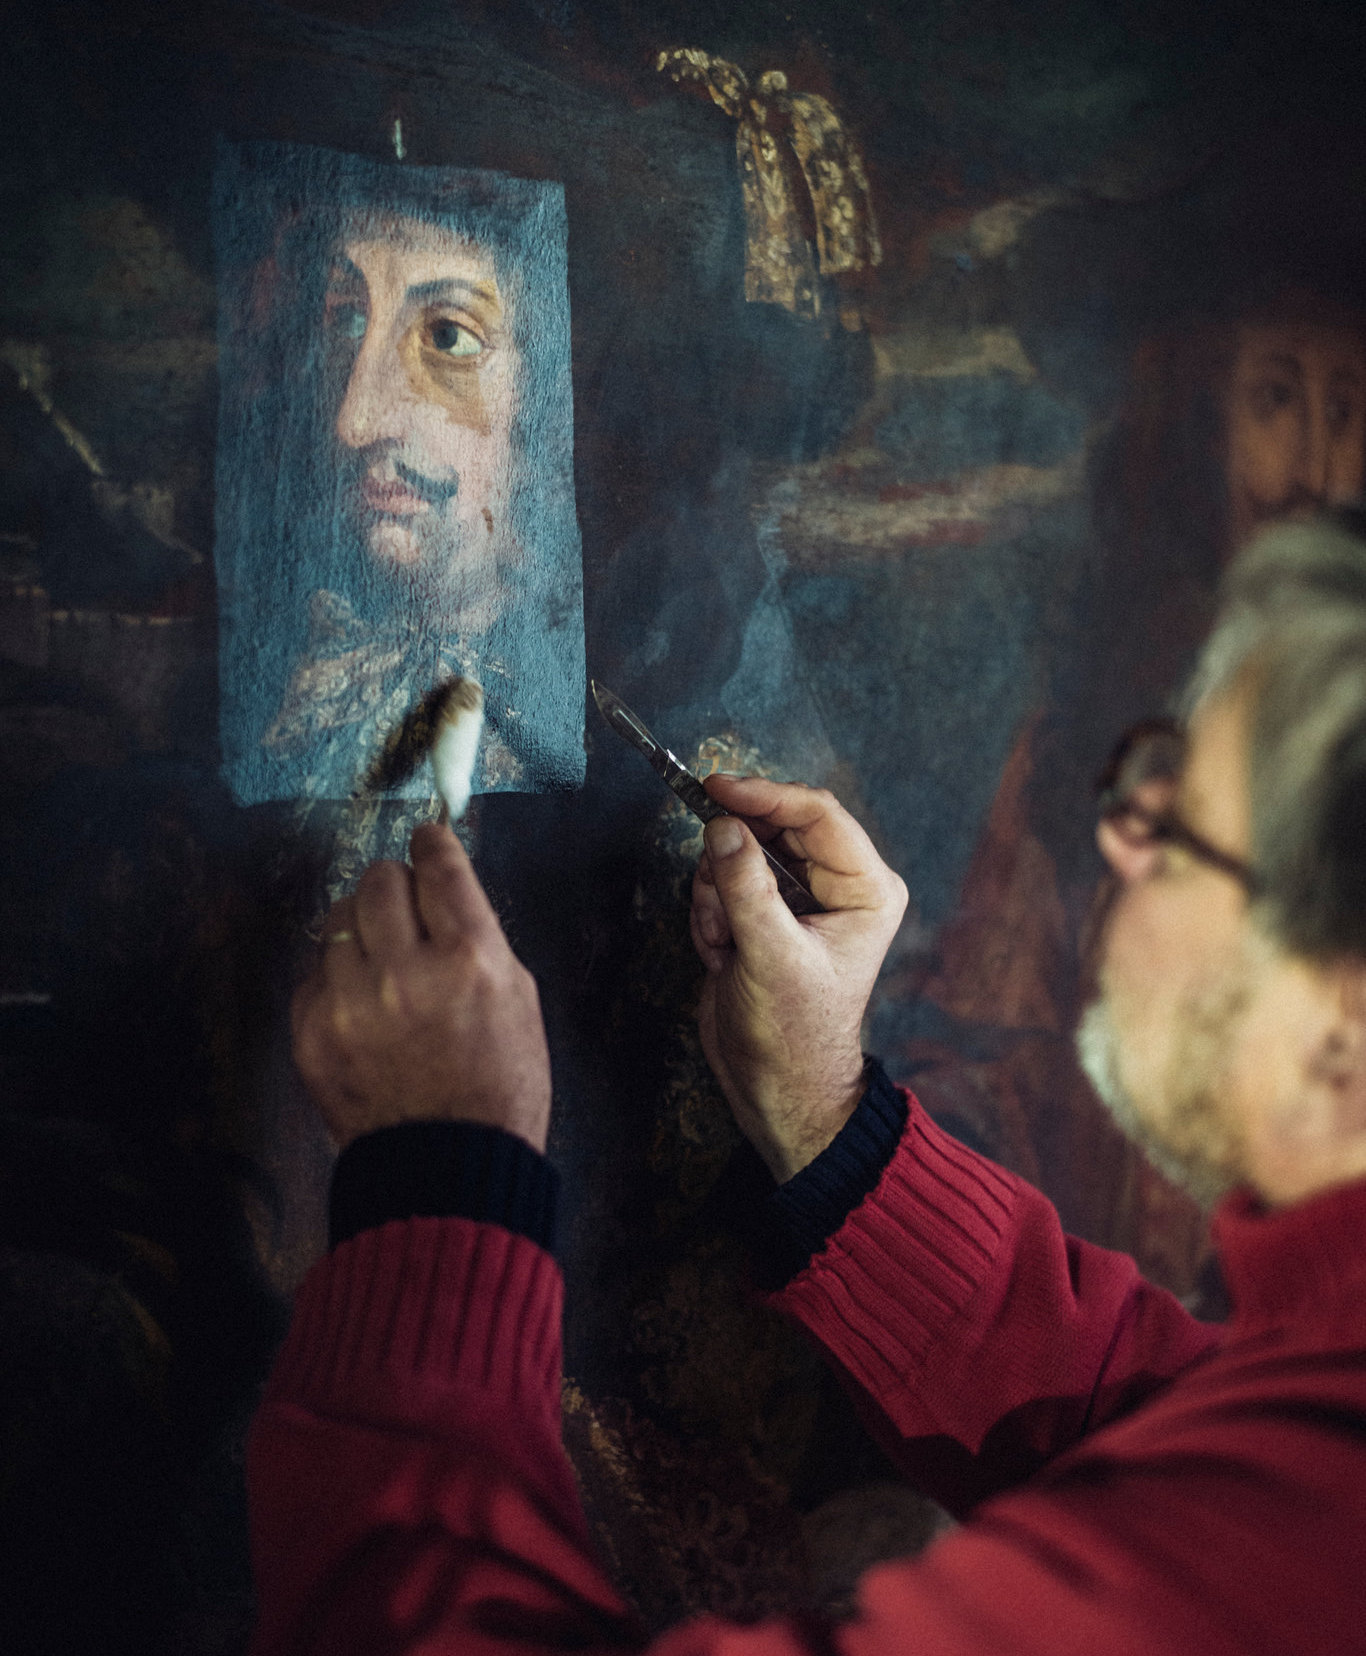 The restorer TK at work, image ©Julien Mignot pour The New York Times